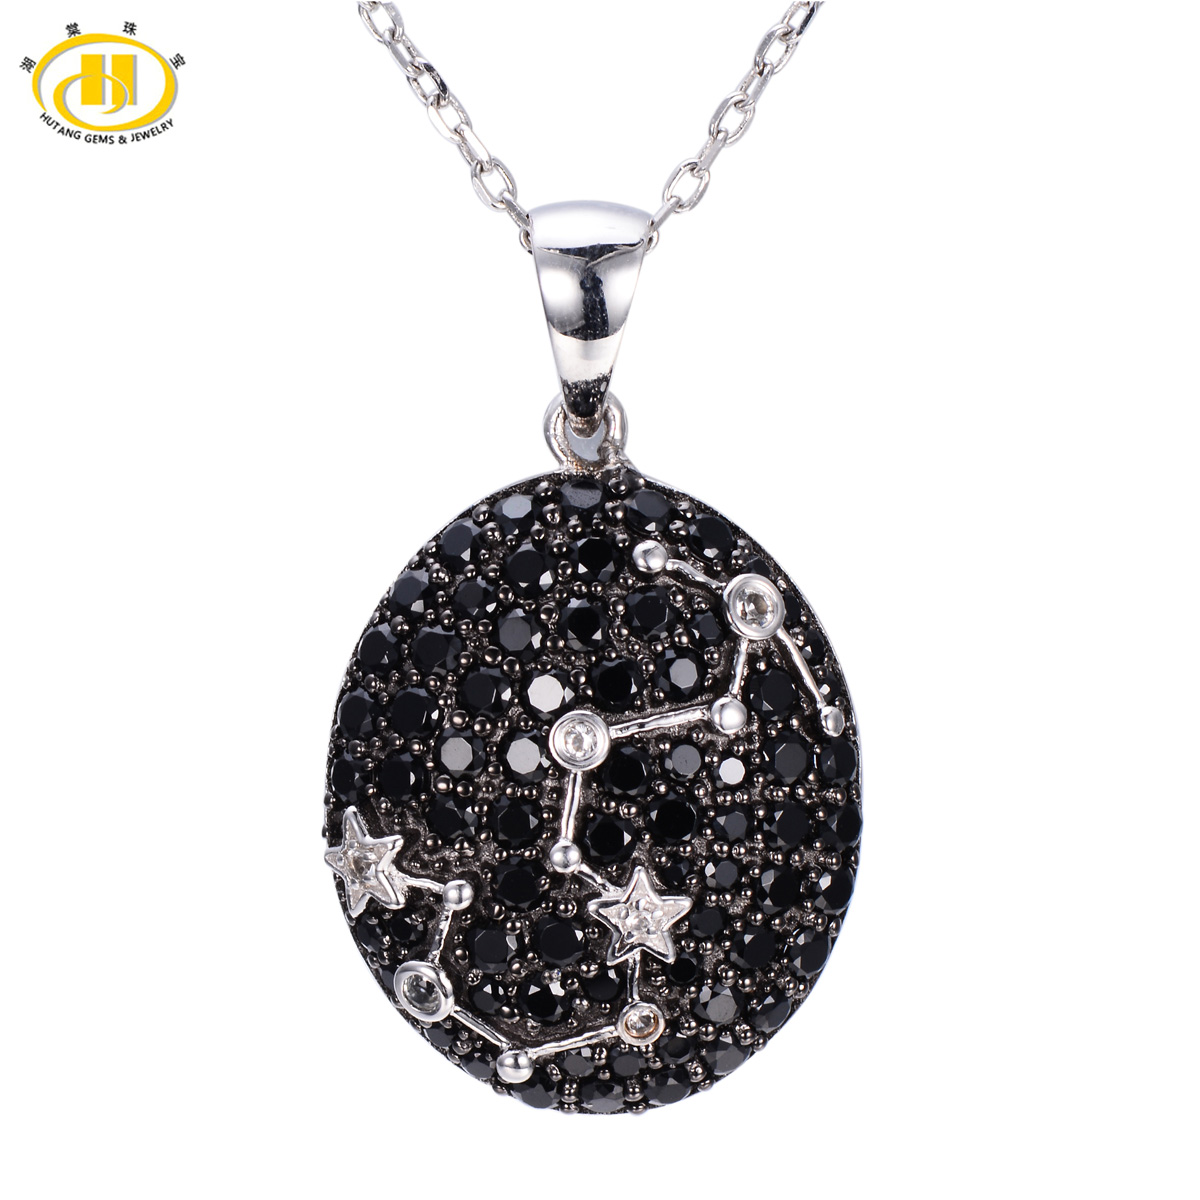 Hutang Classic Scorpio Constellation Black Spinel & White Topaz Pendant Solid 925 Sterling Silver Necklace Free Chain Gift